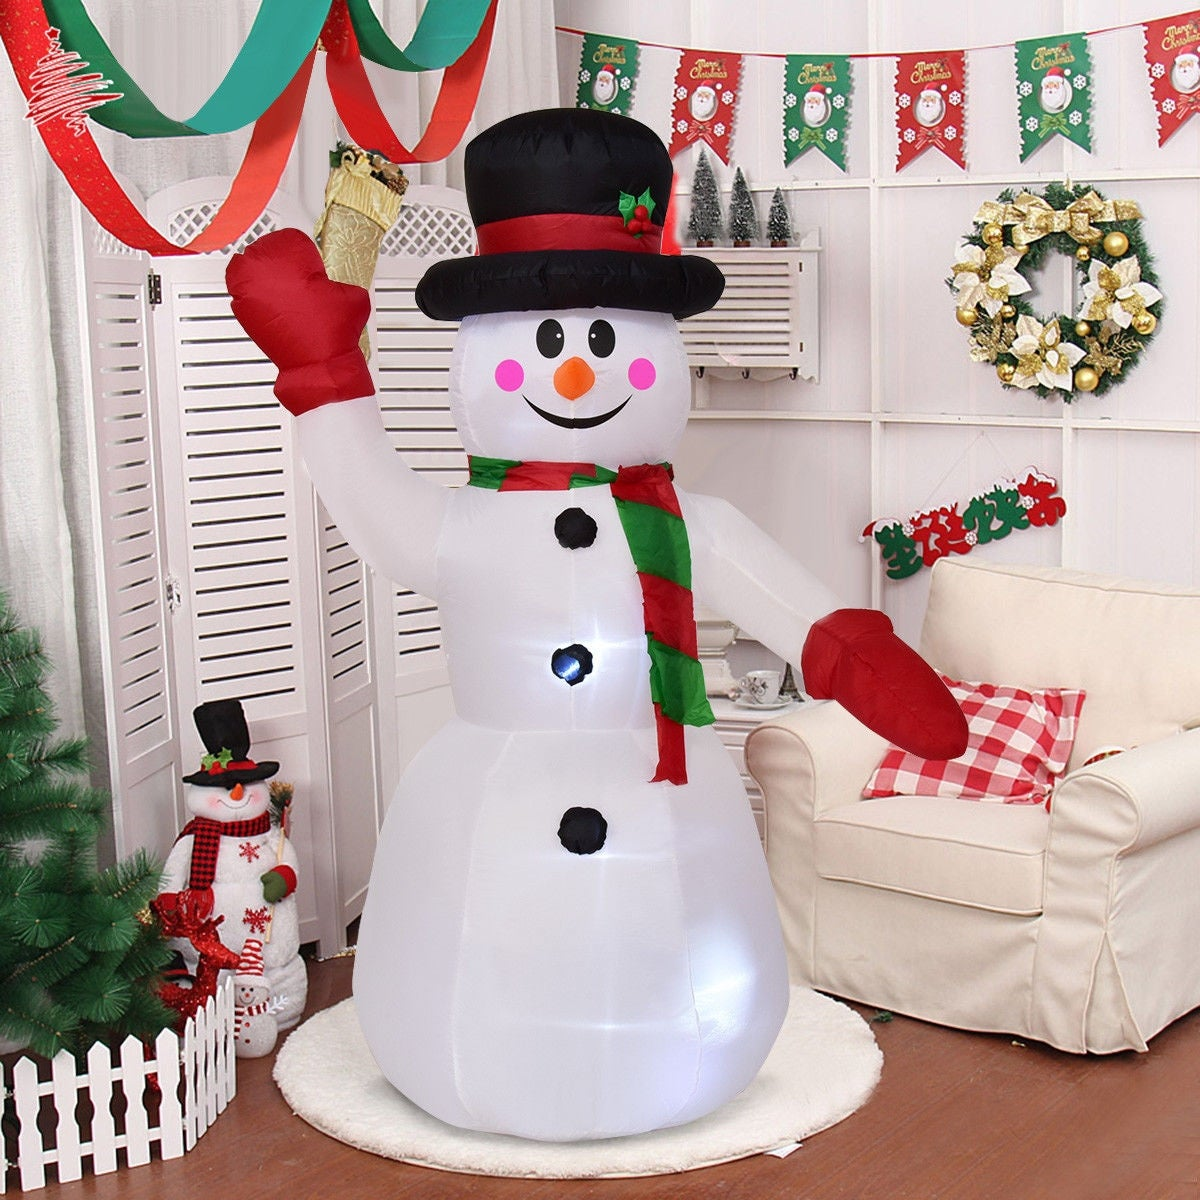 Costway 8' Indoor/Outdoor LED Snowman Christmas Holiday Decoration Setting  - Free Shipping On Orders Over $45 - Overstock.com - 24358264